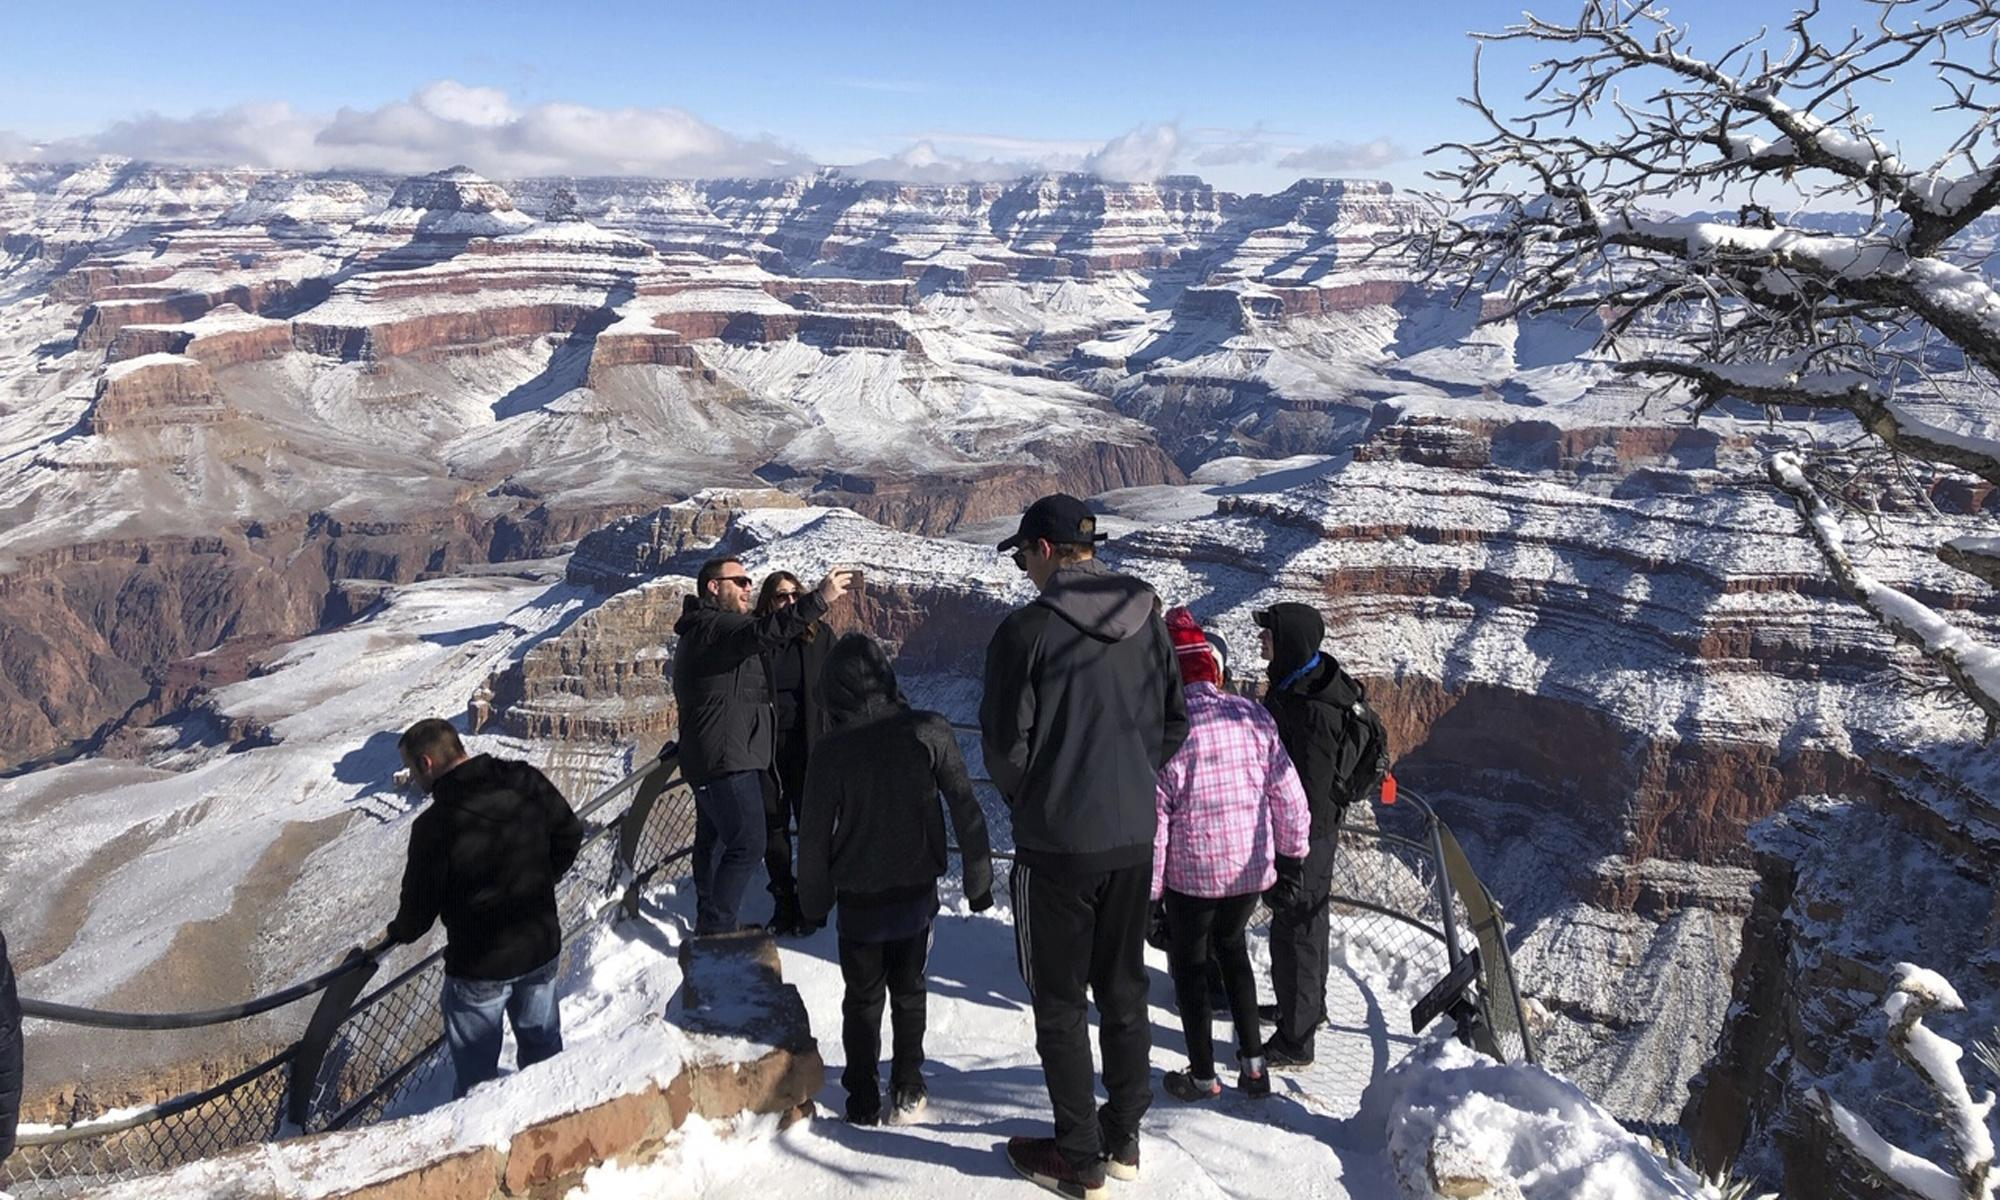 Grand Canyon tourists possibly exposed to radiation at museum, whistleblower says